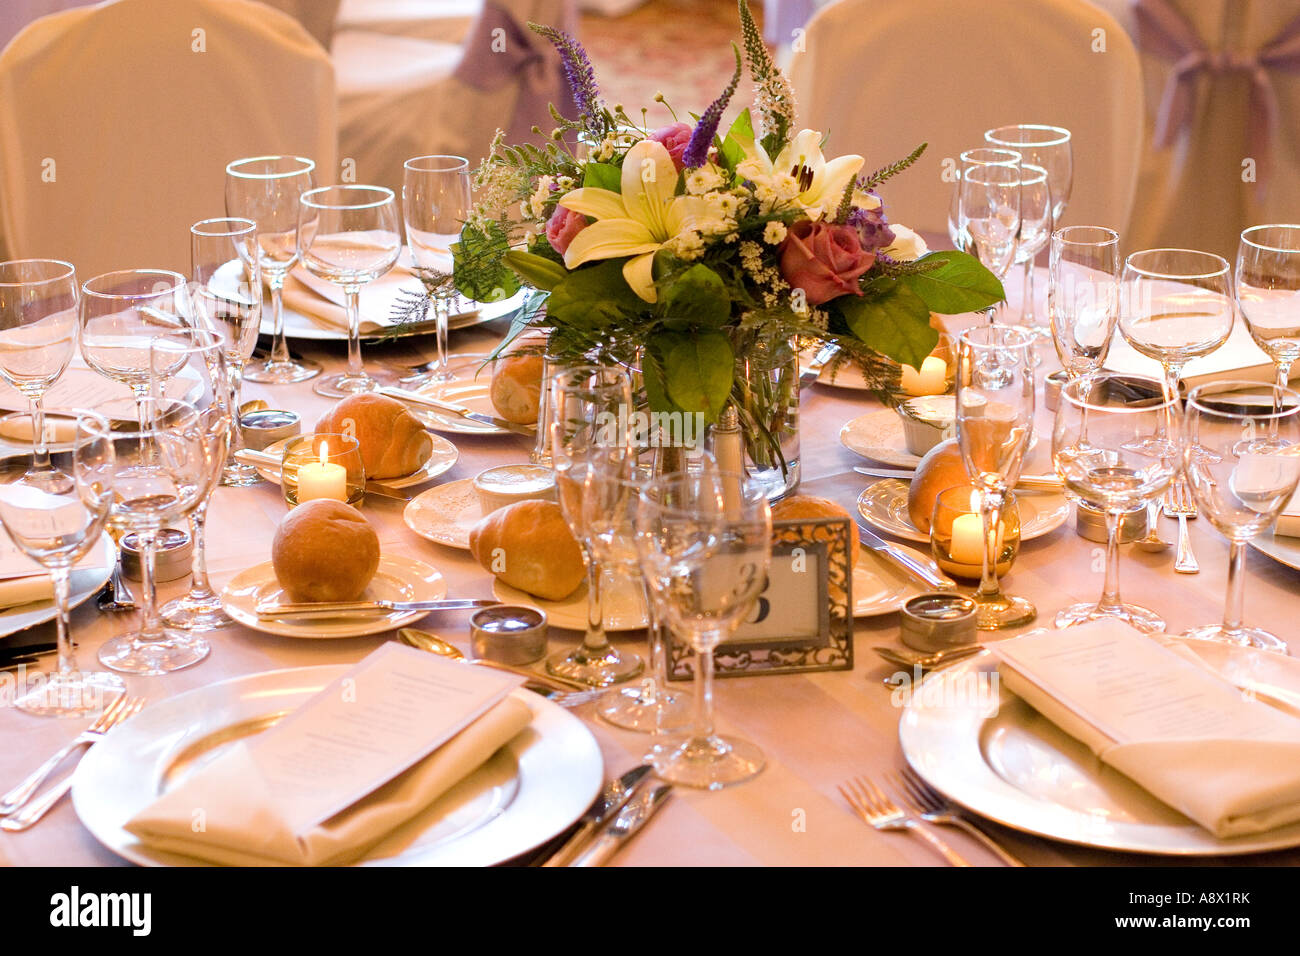 Formal wedding table setup with floral centerpiece. Copyright